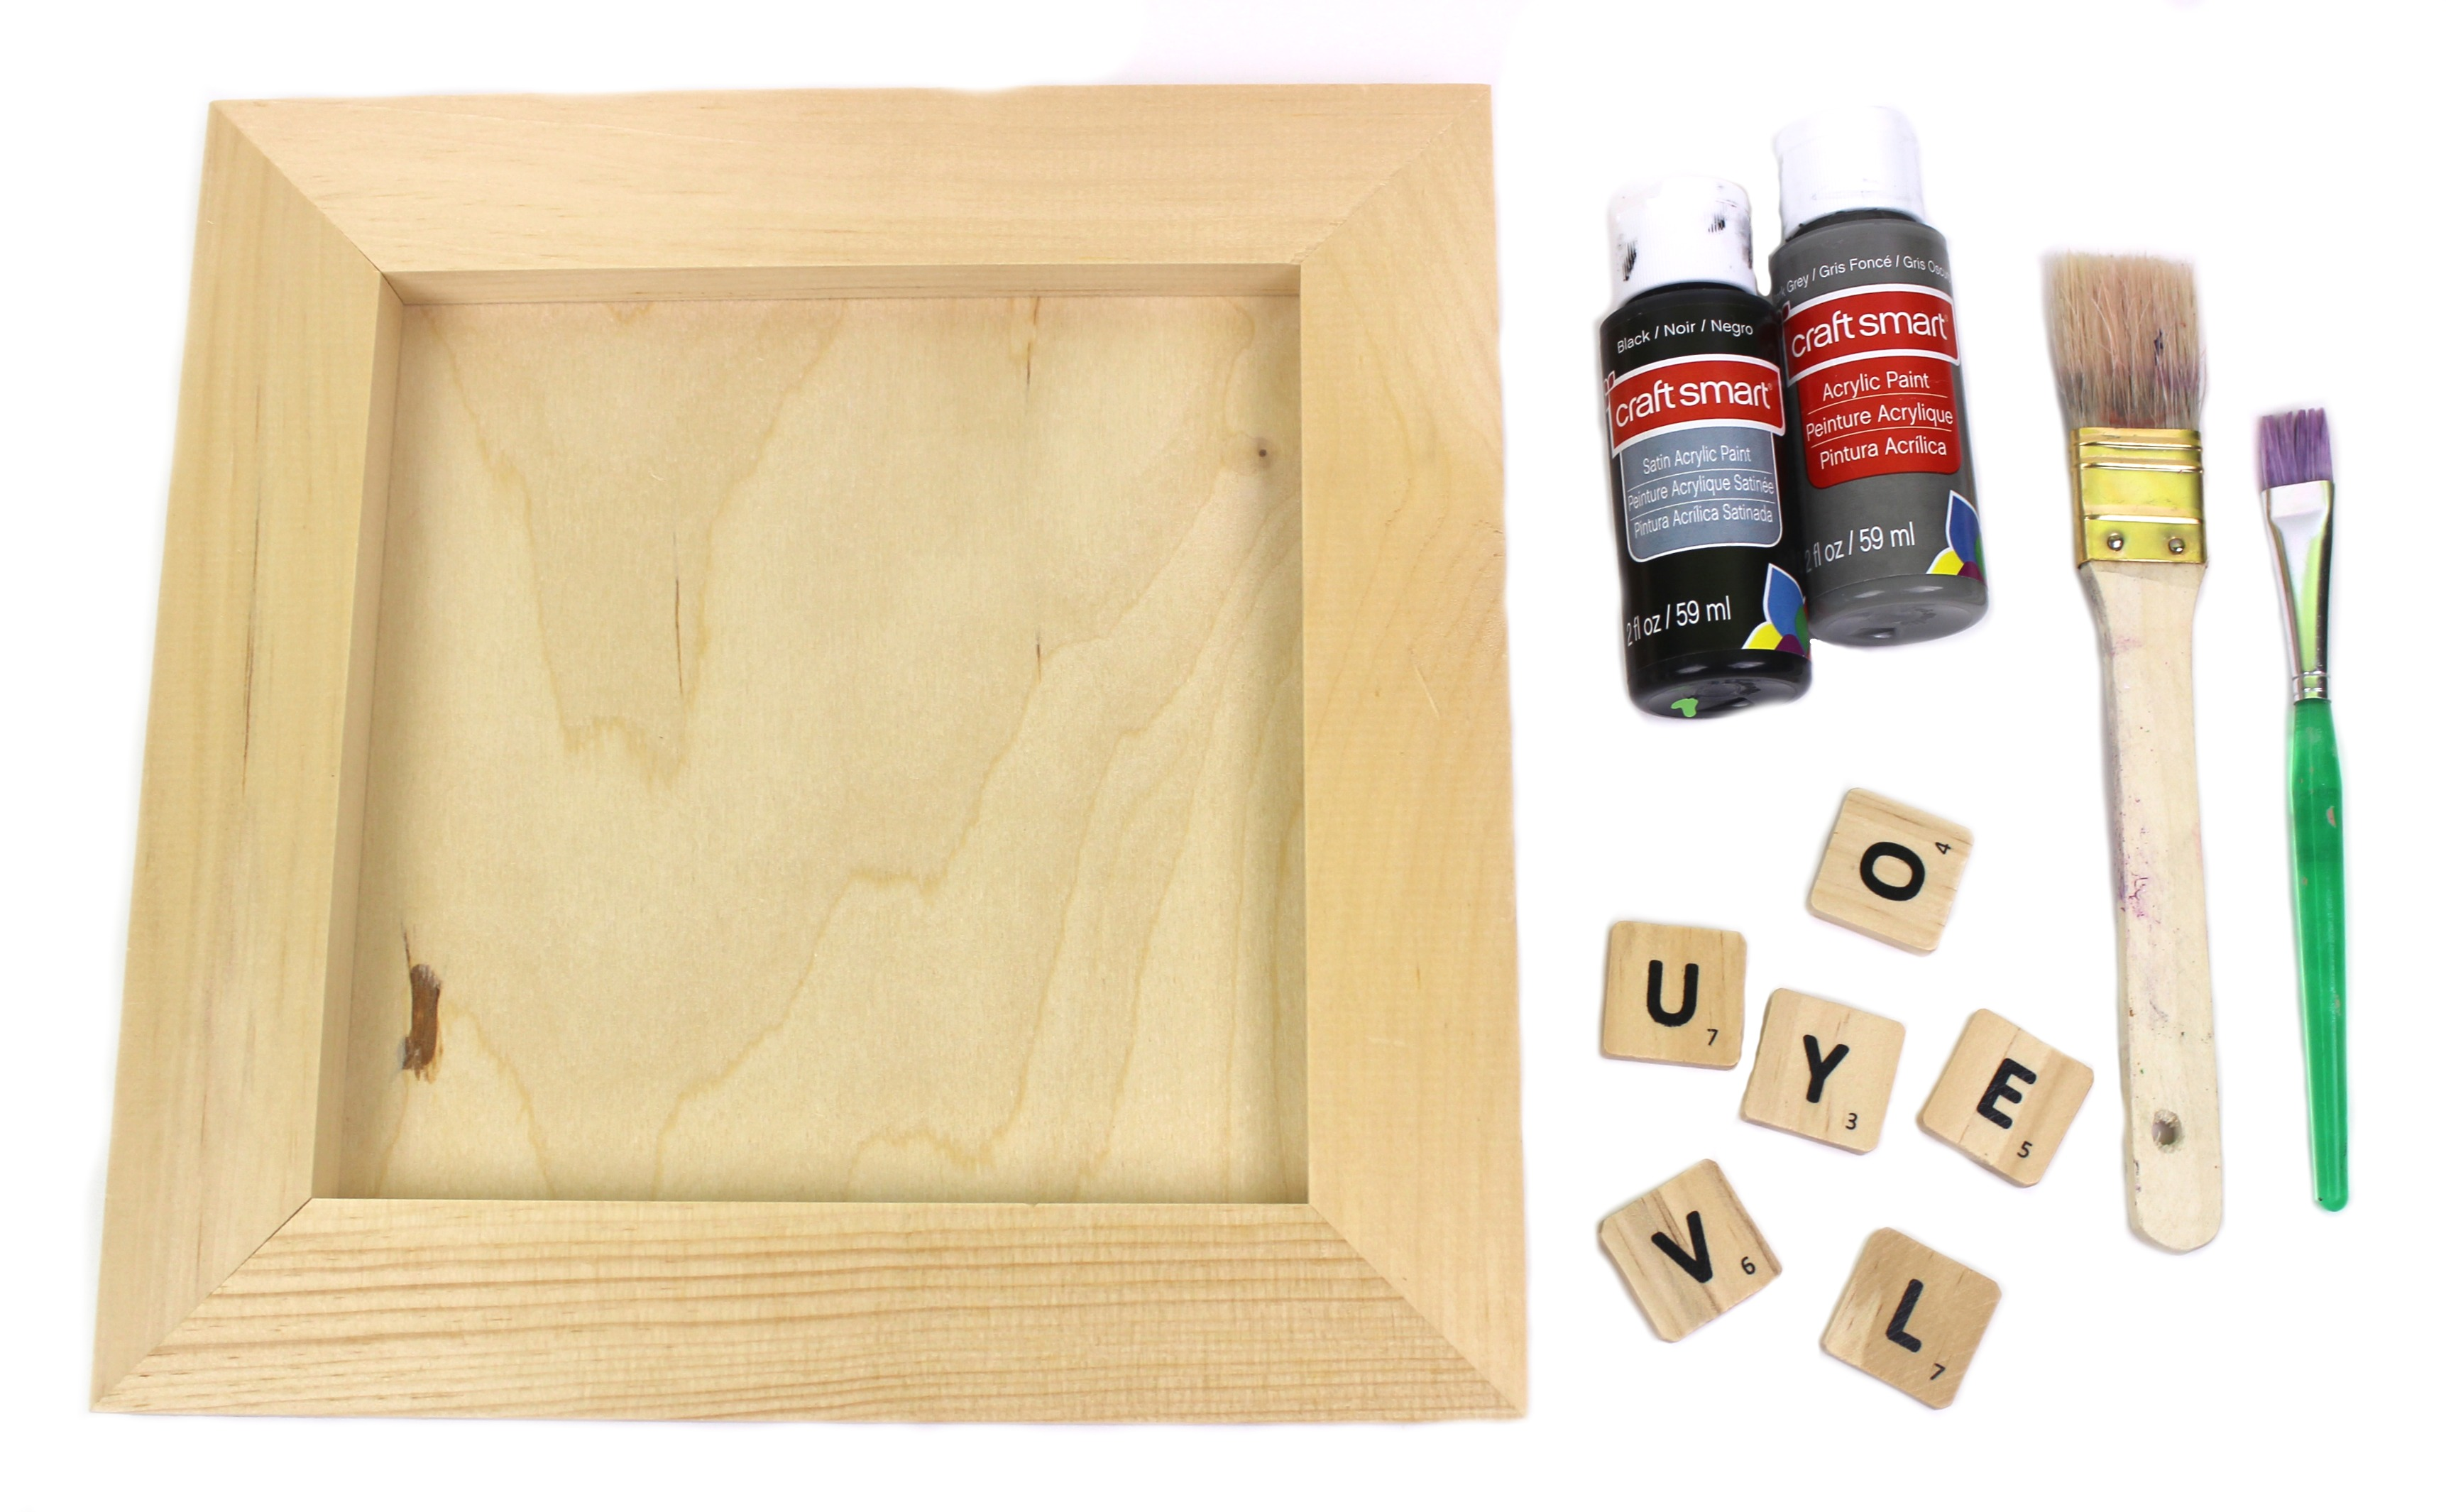 DIY Scrabble Tile Wall Decor - A Little Craft In Your Day